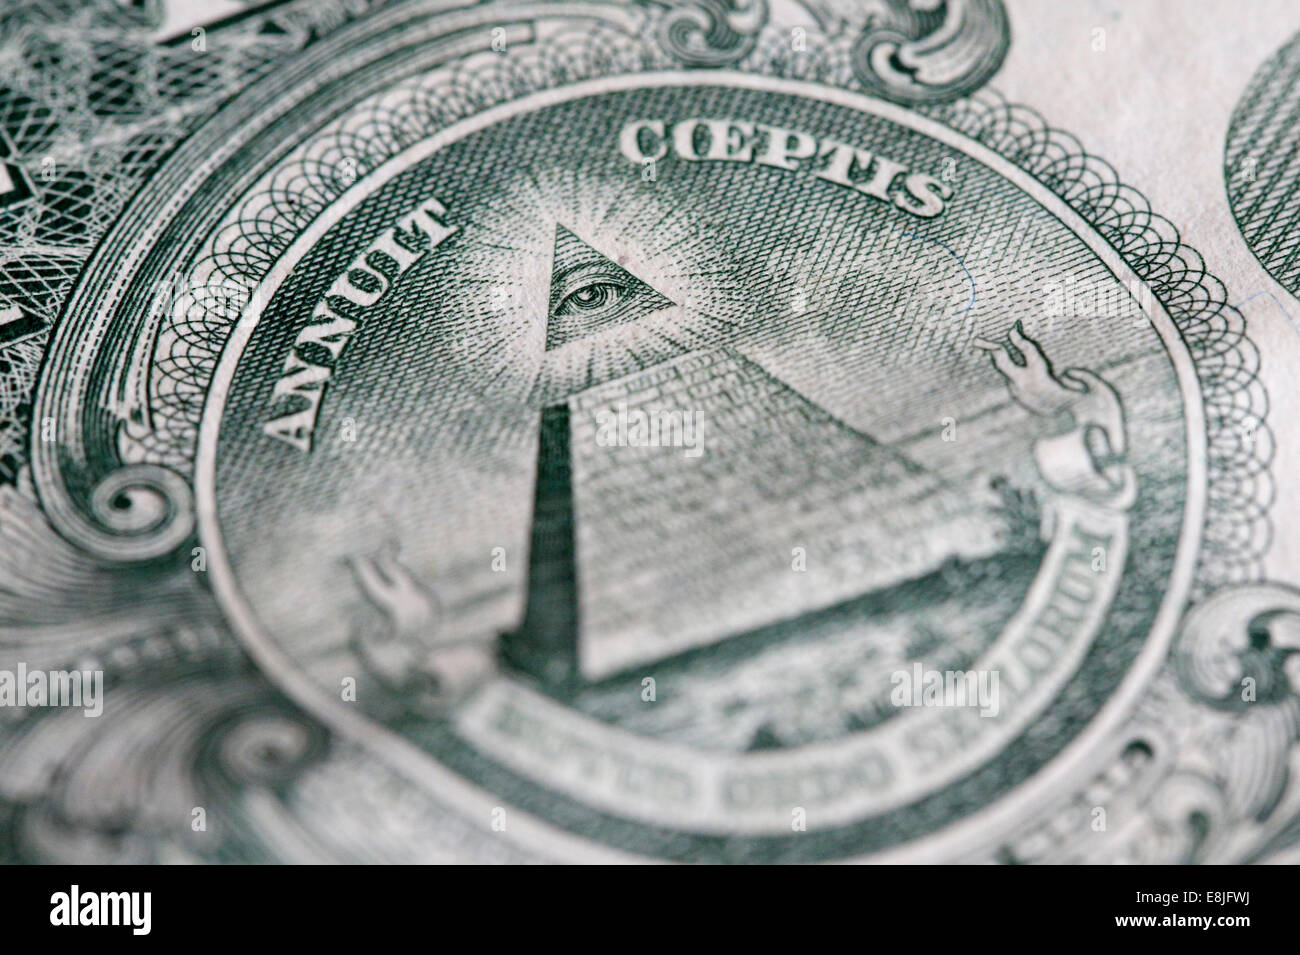 The reverse of the United States one-dollar bill depicting a Pyramid with 13 steps and the Eye of Providence. - Stock Image